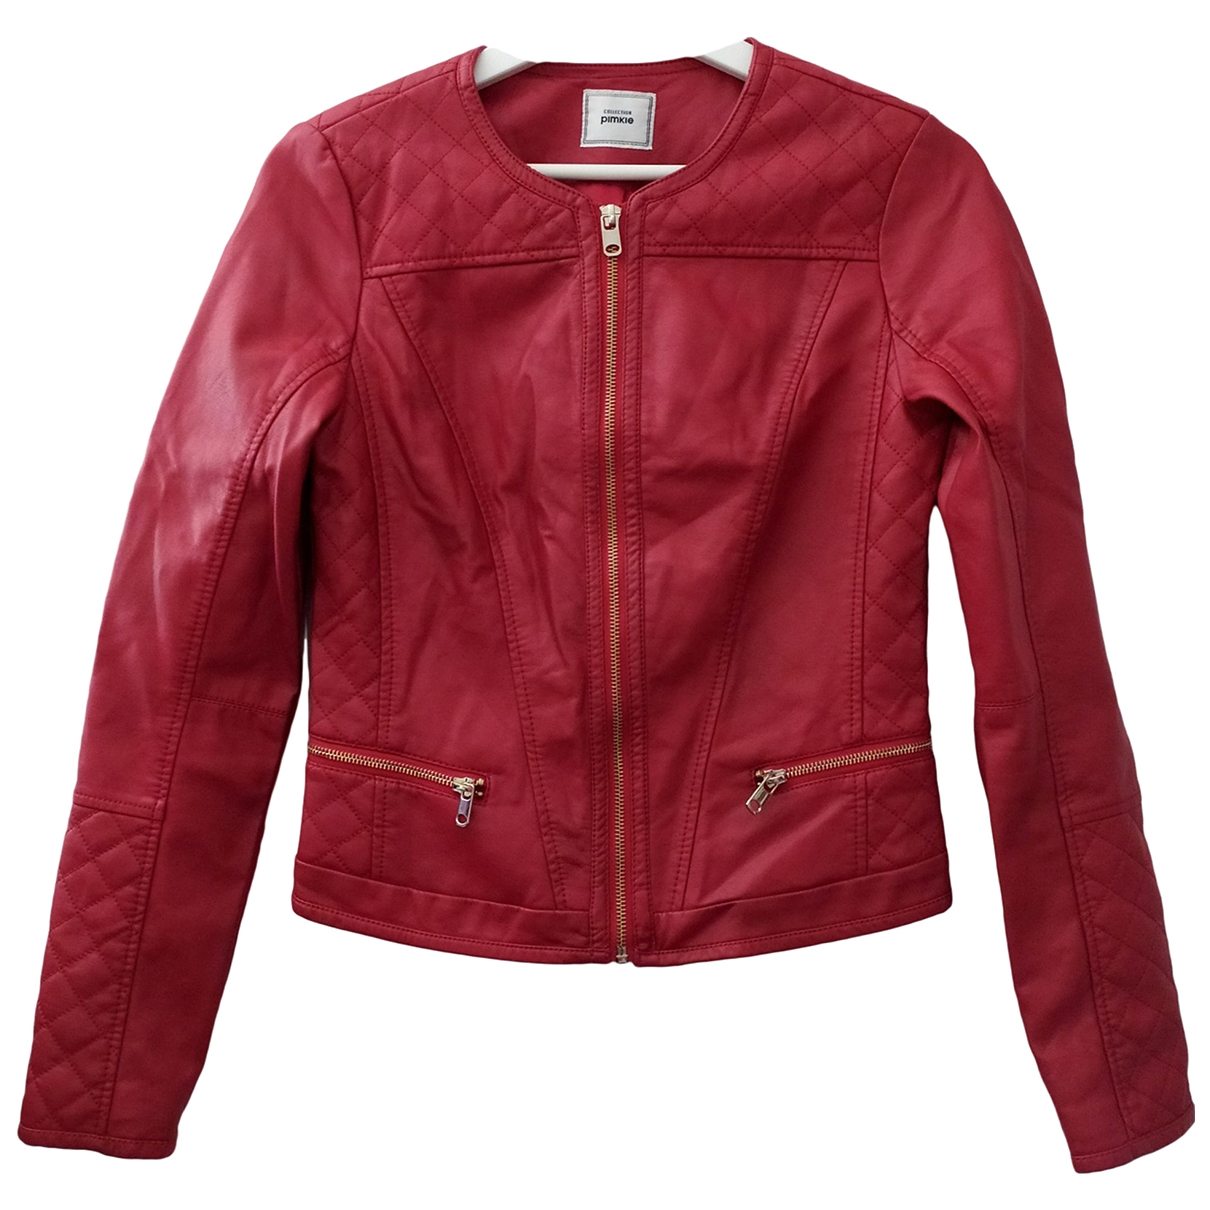 Non Signé / Unsigned \N Red Leather jacket for Women S International